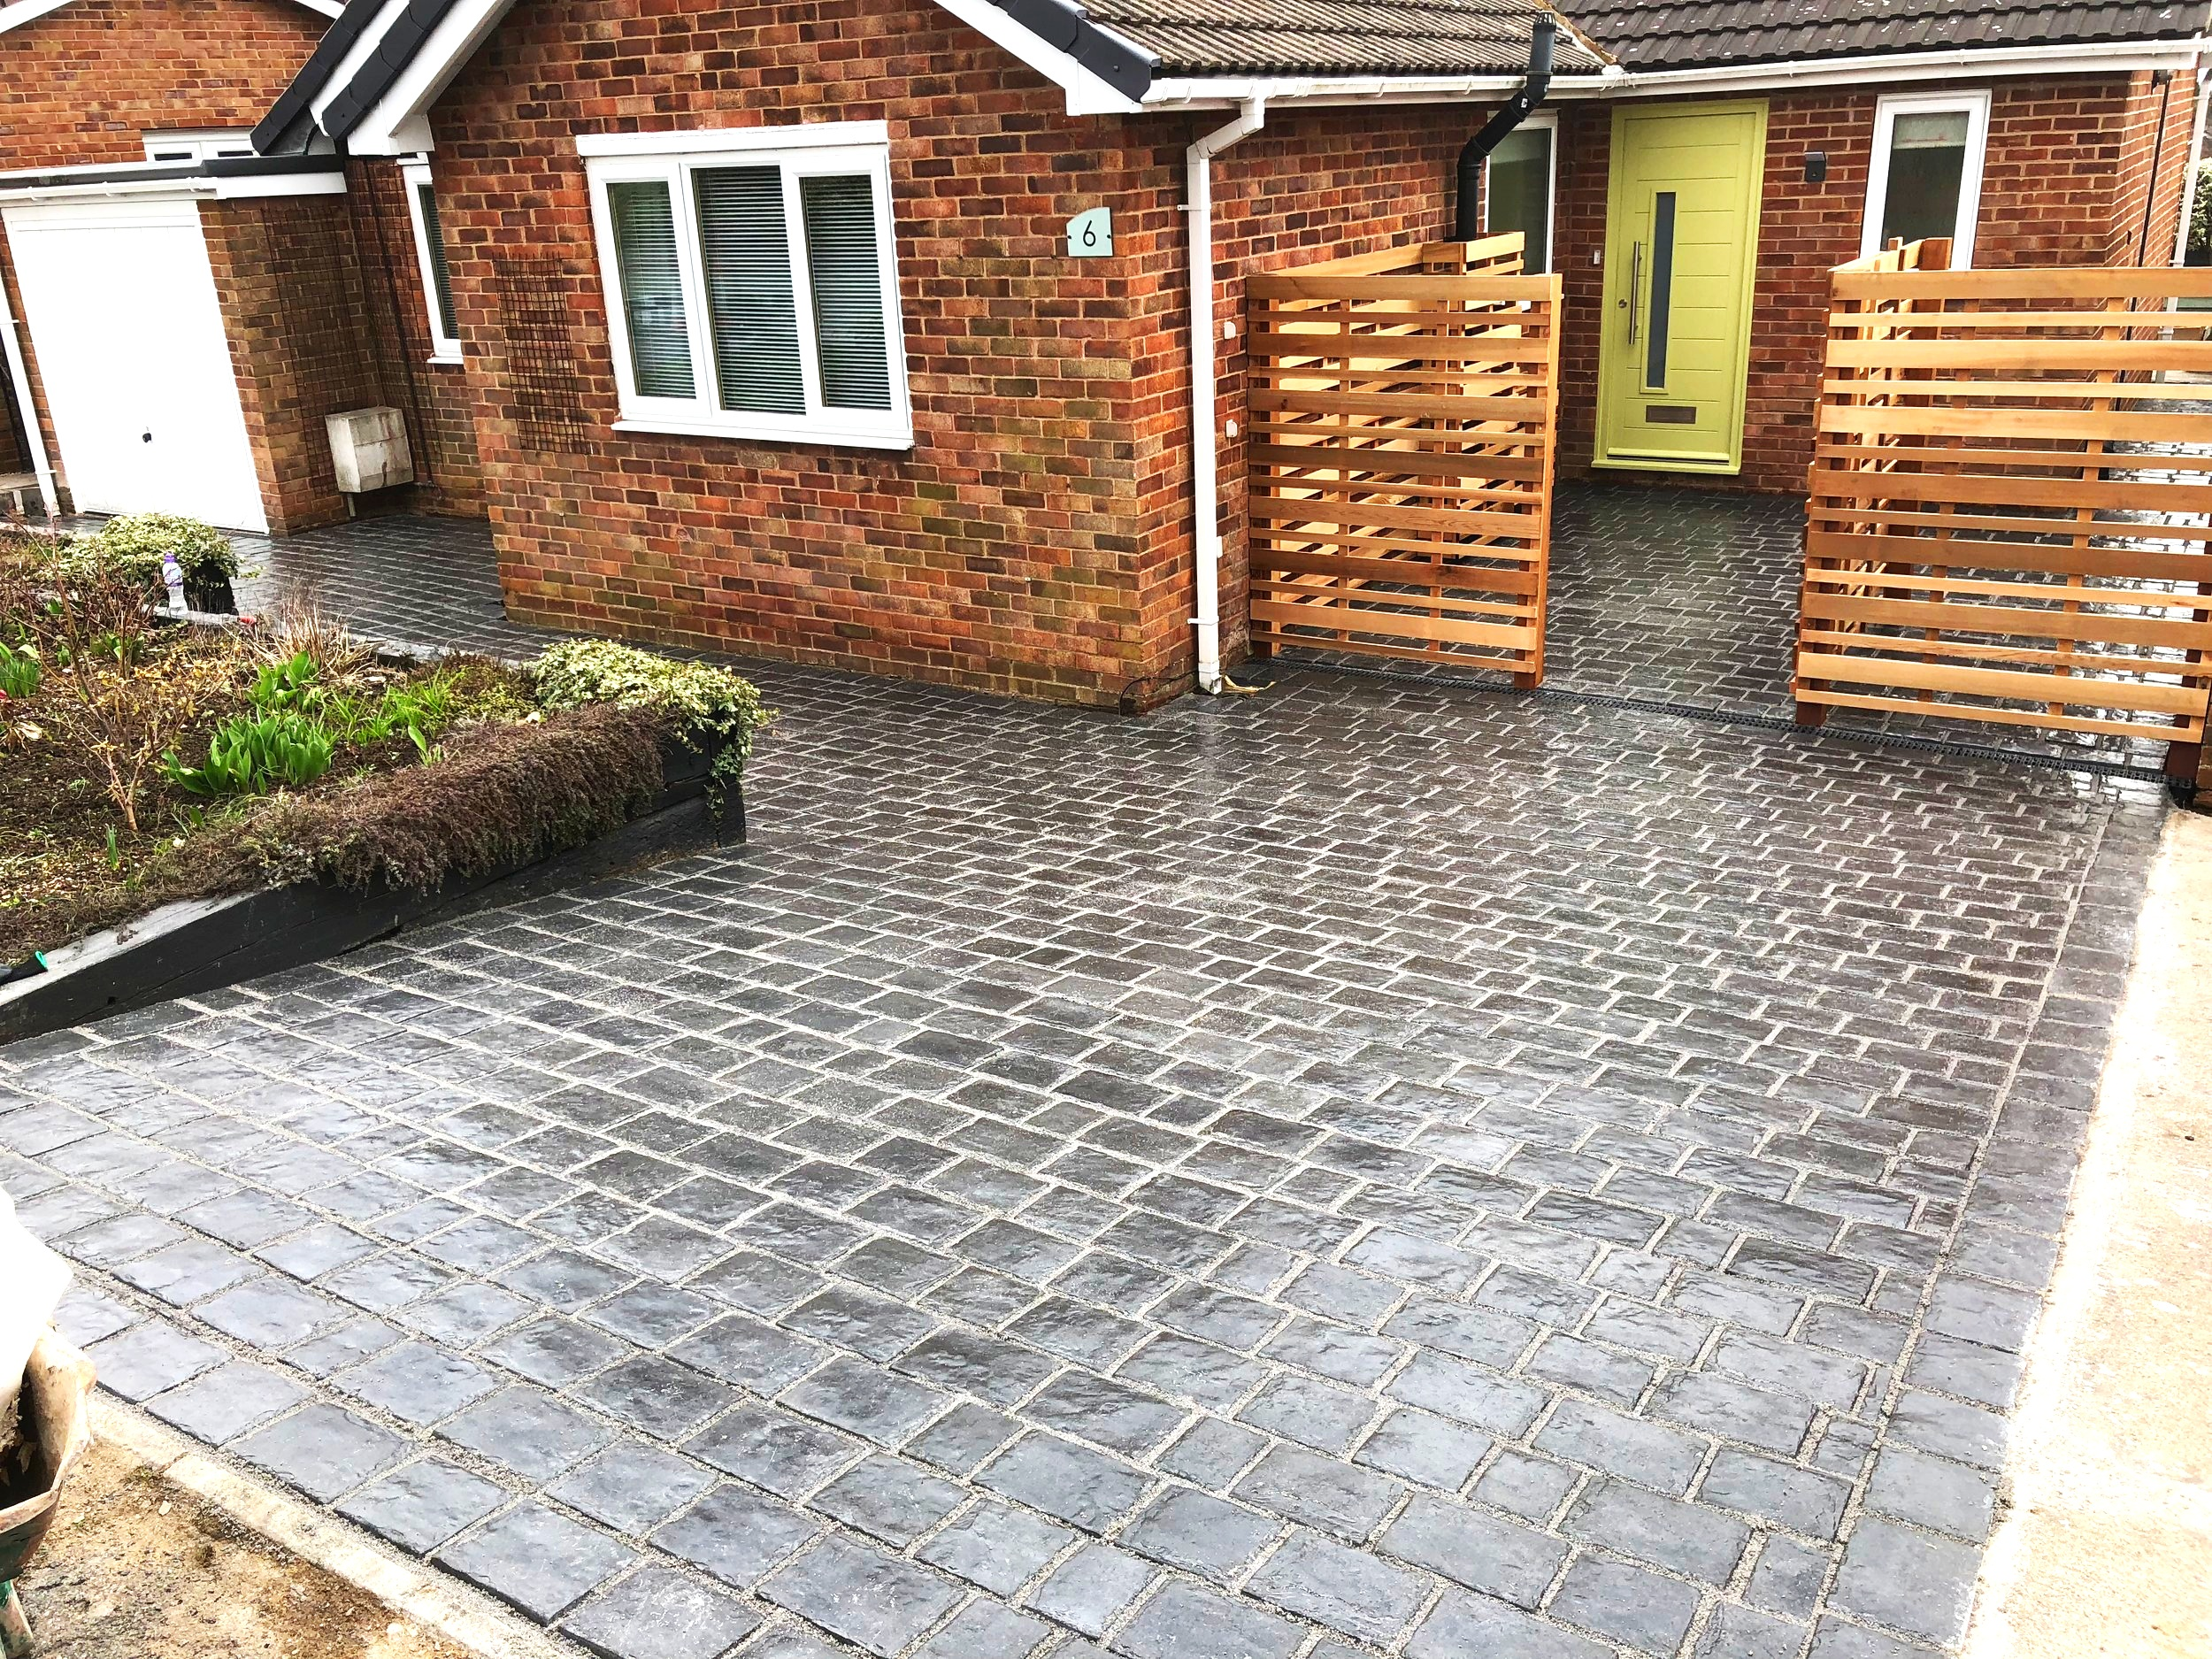 Driveways - We have been specialists in block paving for over 15 years, designing and delivering creative driveways to suit all house types. Whether it's a sleek, uniformed design or unique patterns you'd prefer, with our design service included within the price, you can be sure to get premium quality for a very attractive price.